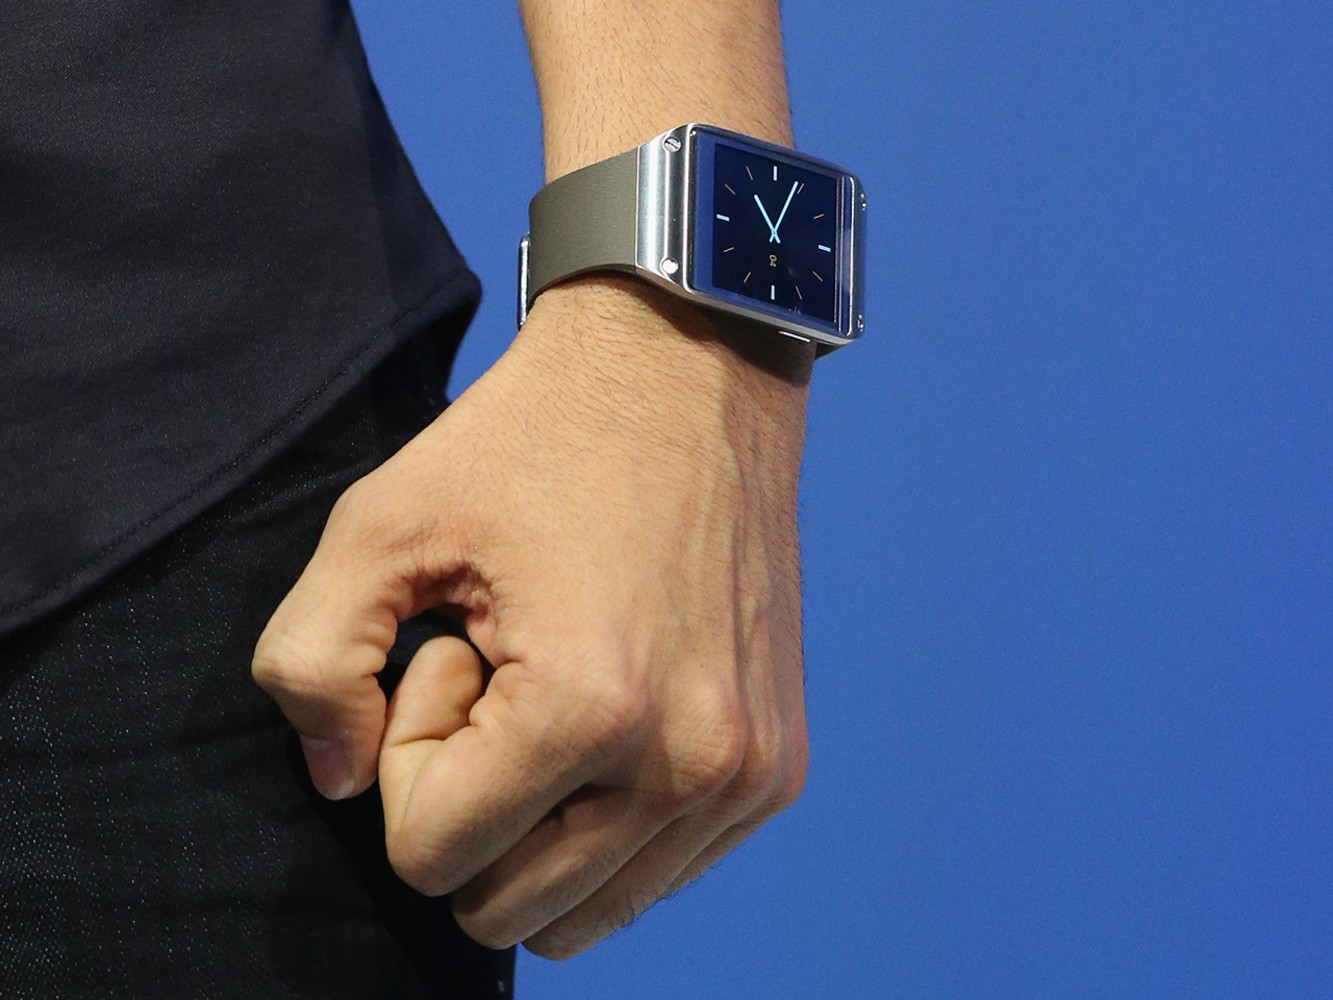 Smartwatches will soon take off — but not because they tell time